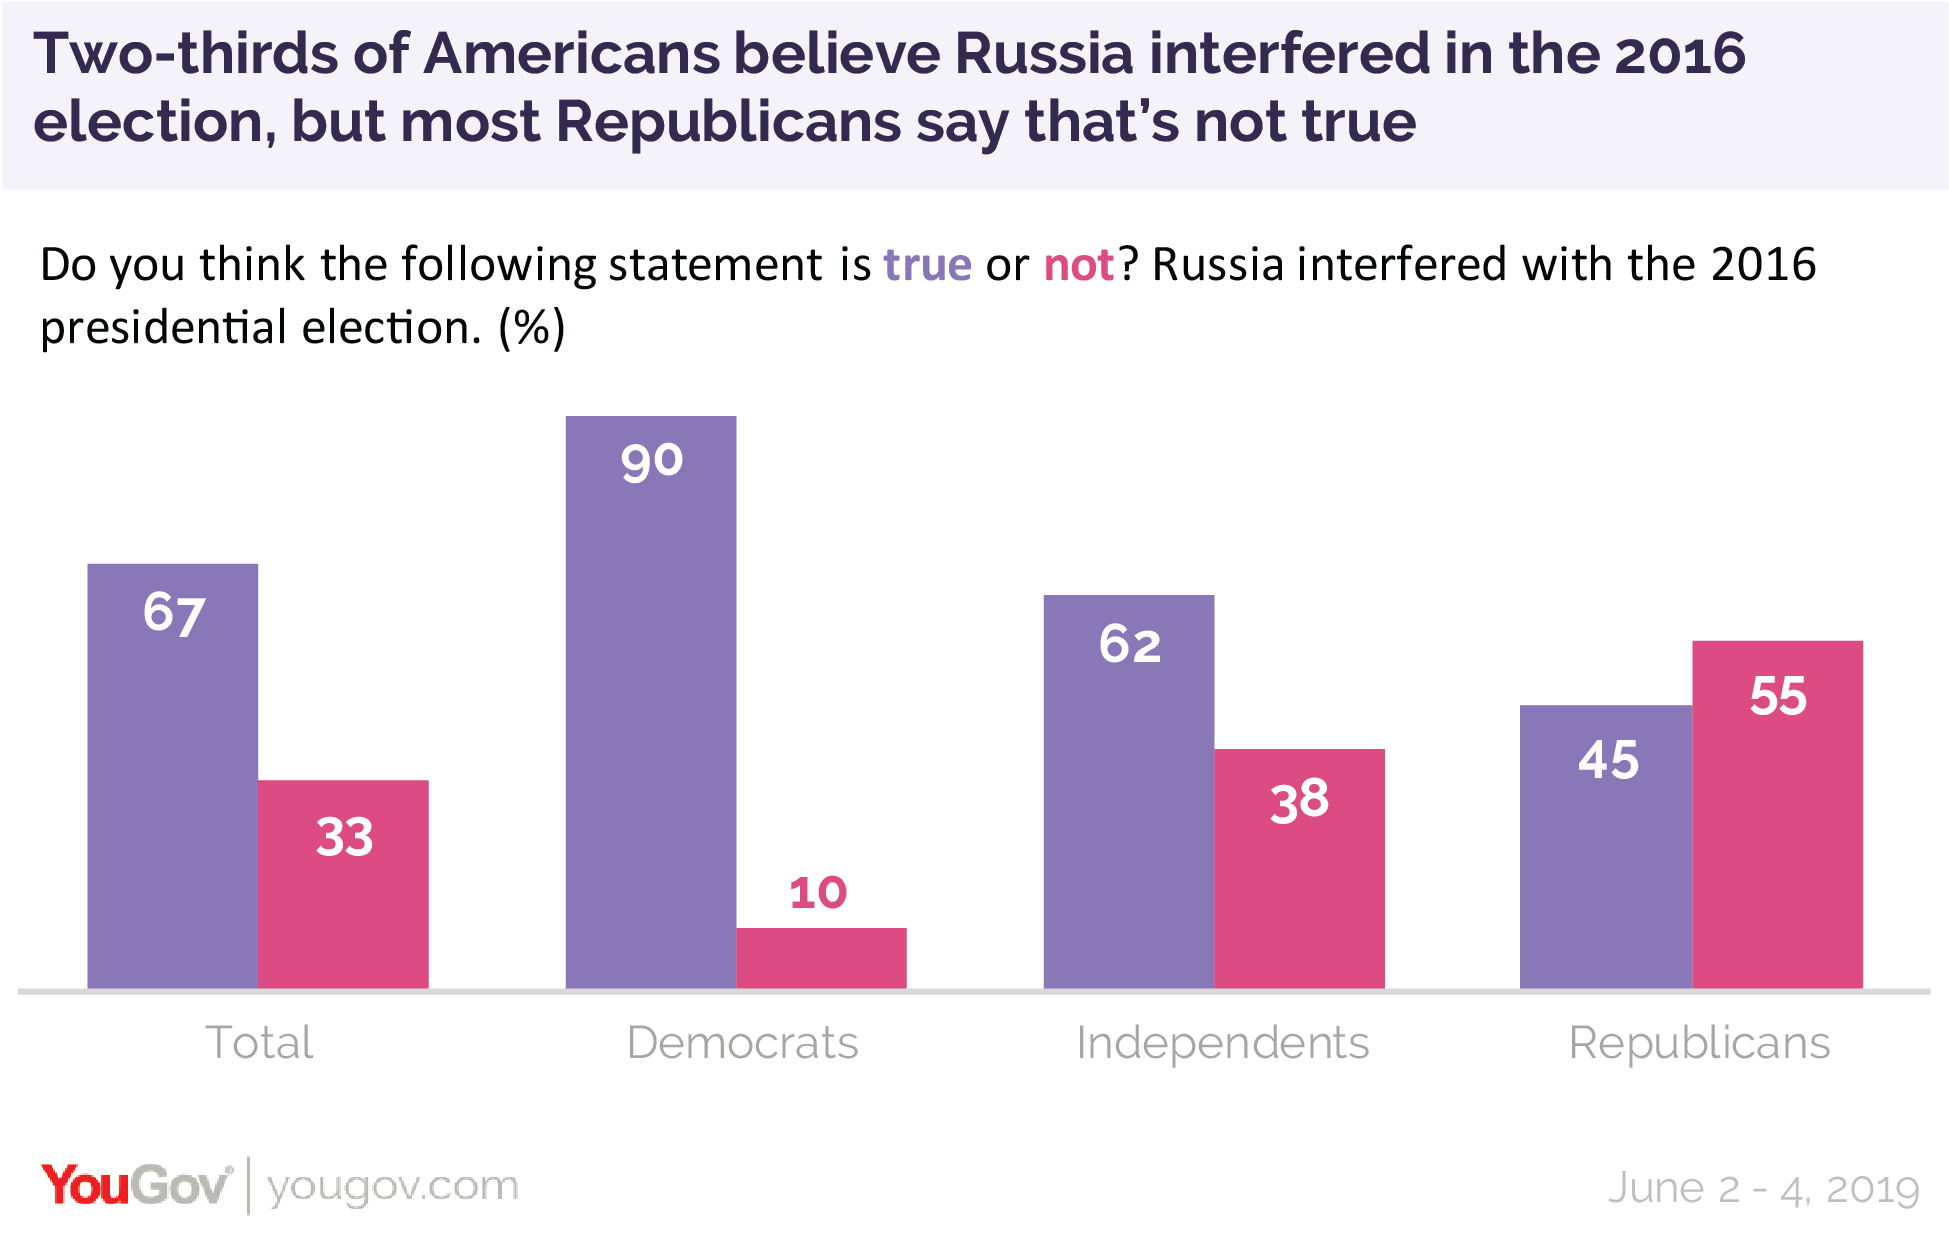 Two-thirds of Americans believe Russia interfered in the 2016 election but most Republicans say that's not true